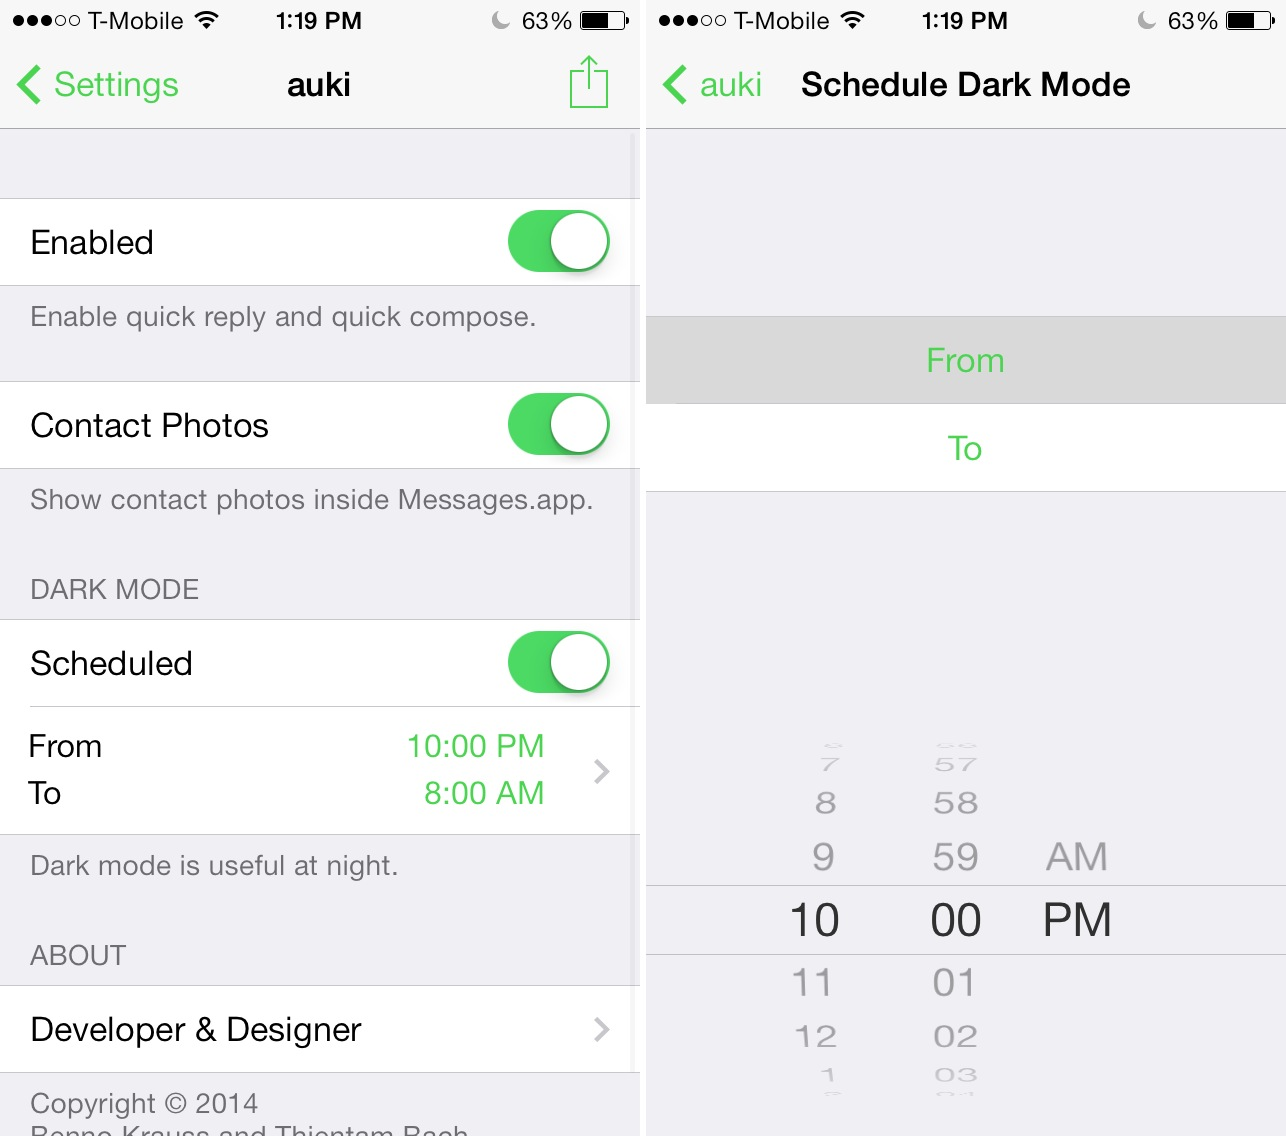 Auki Schedule Dark Mode